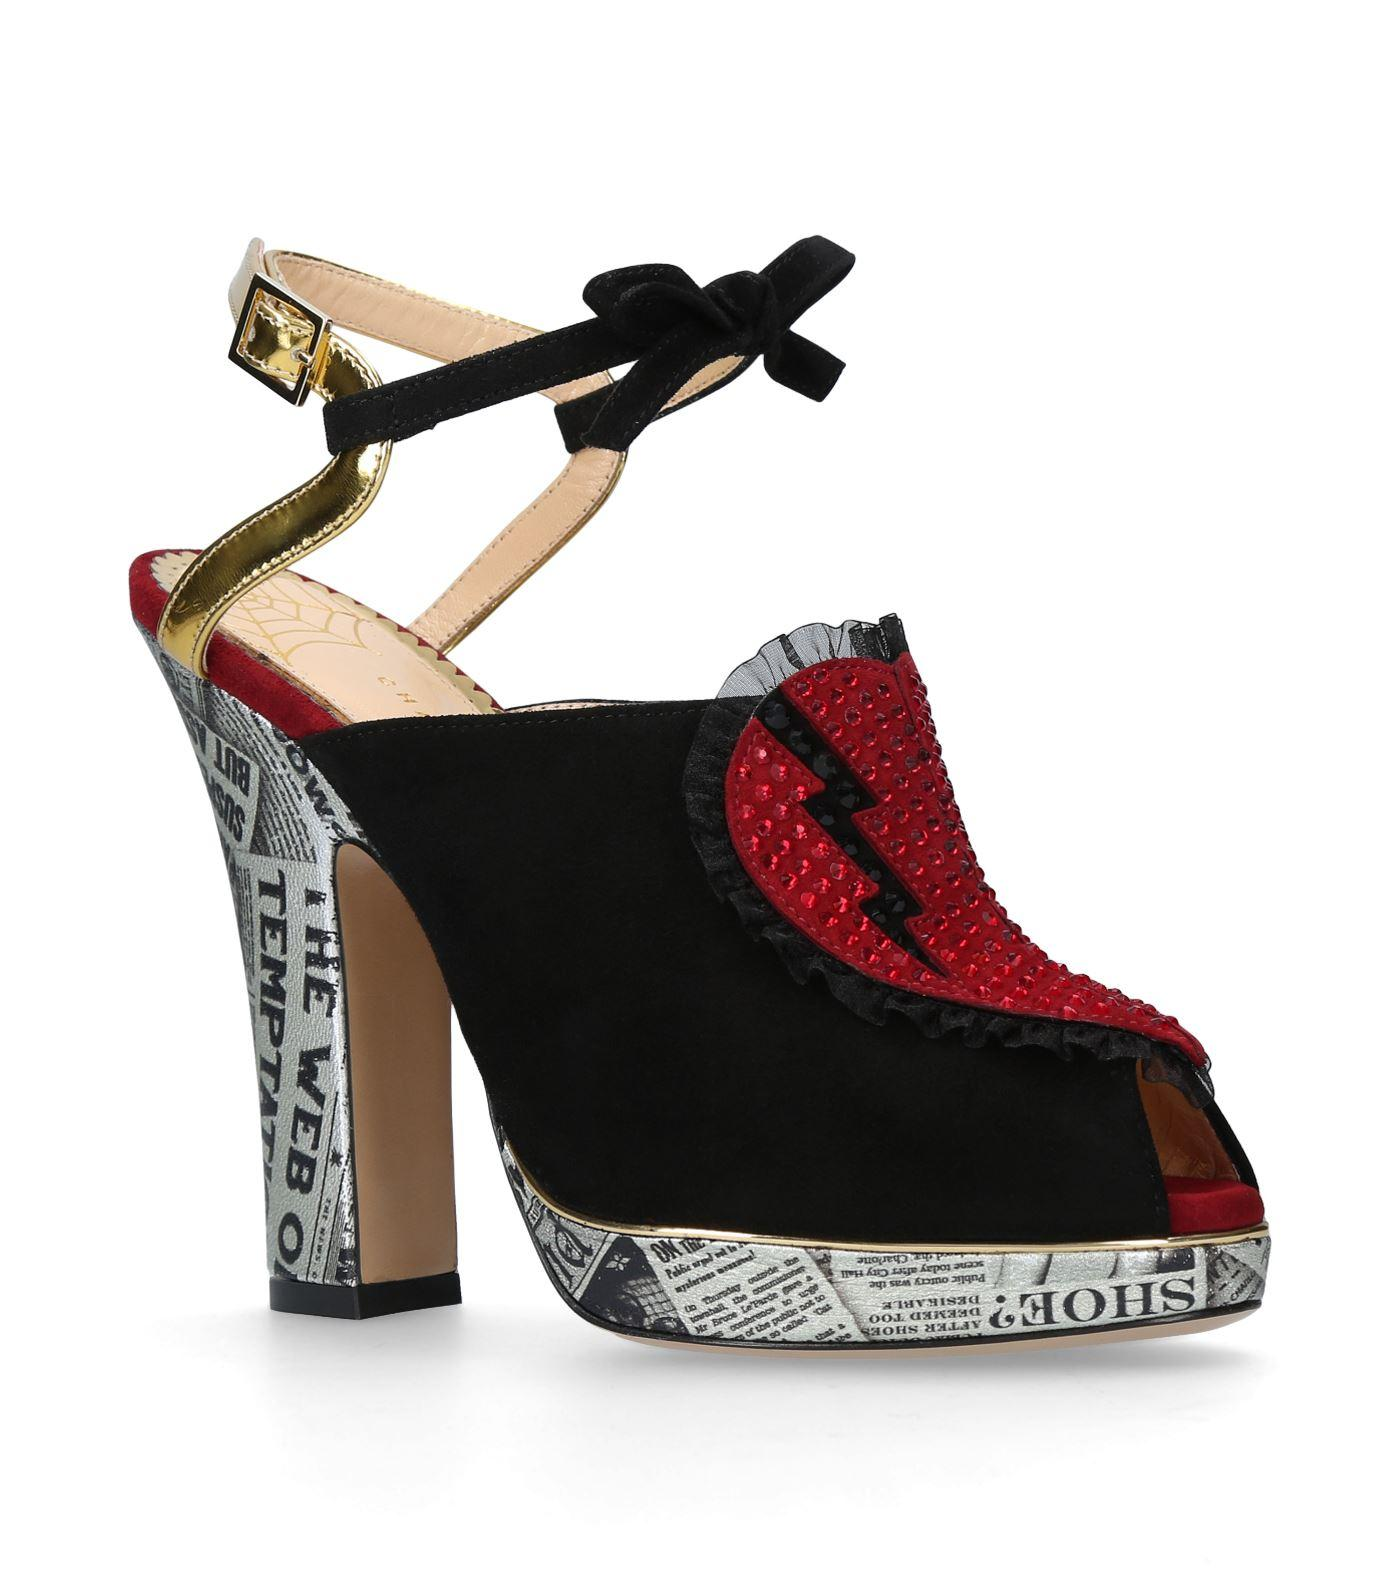 57f1d552fb Charlotte Olympia Killer Heels Embellished-Heart Suede Sandals In Black,  Red And White